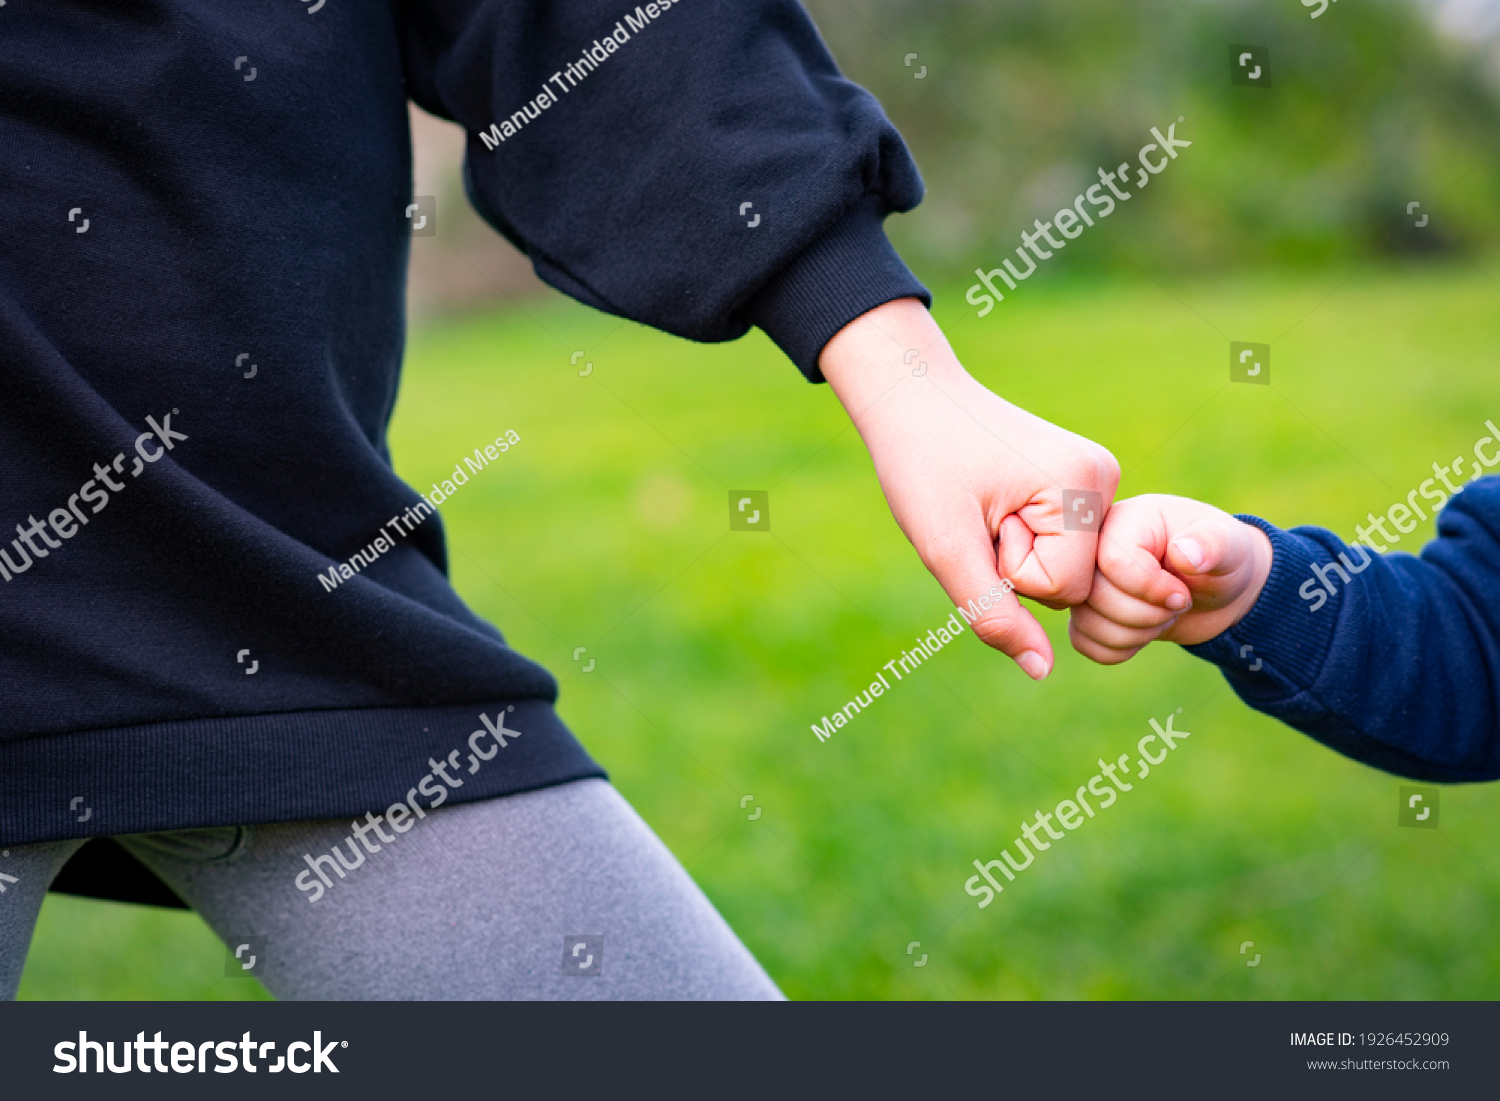 stock-photo-two-boys-hitting-their-fists